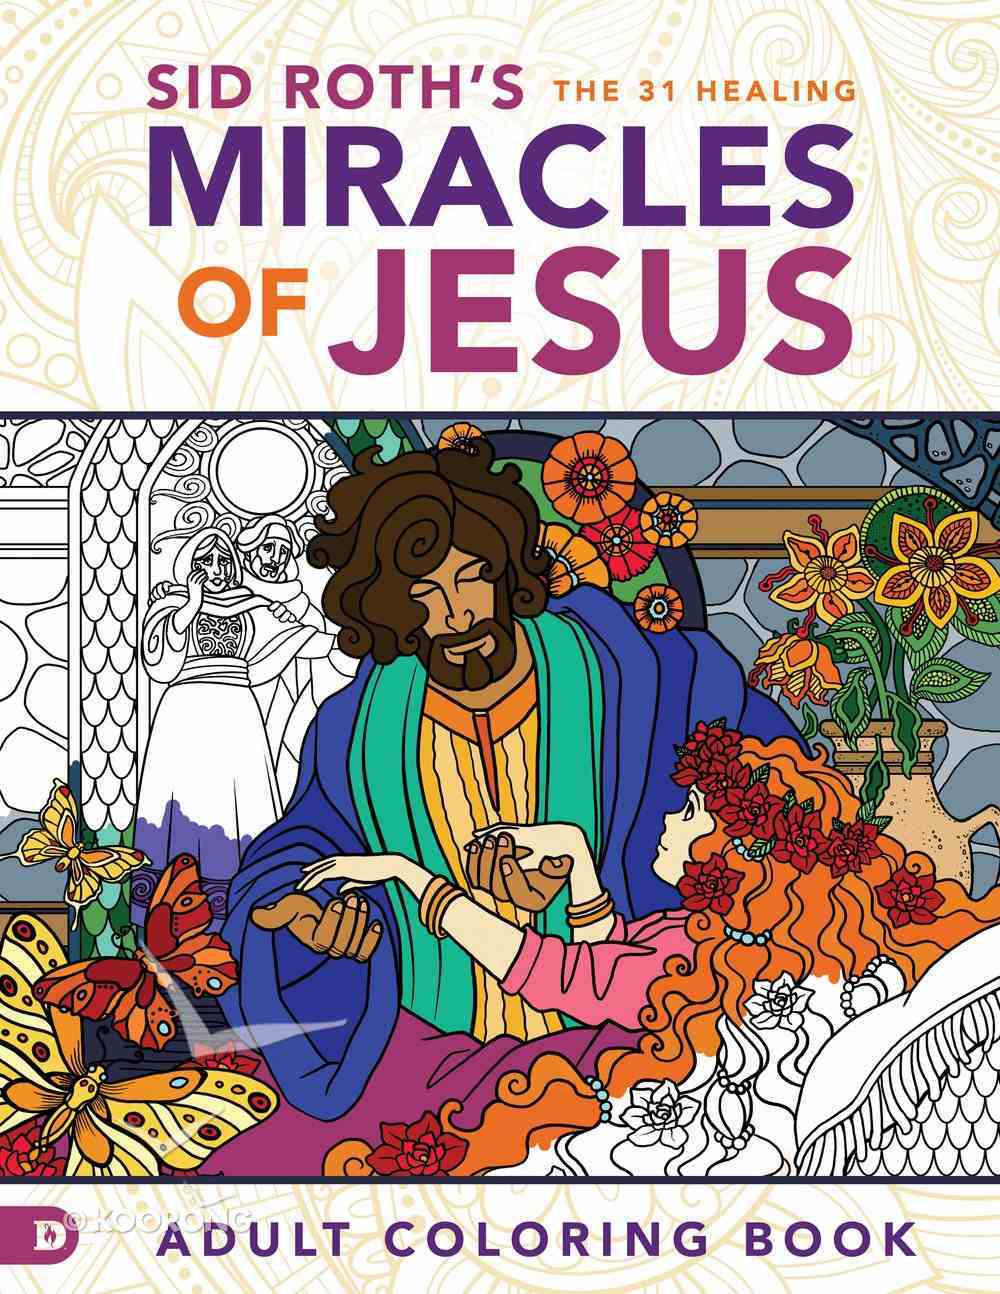 Acb: The 31 Healing Miracles of Jesus Paperback